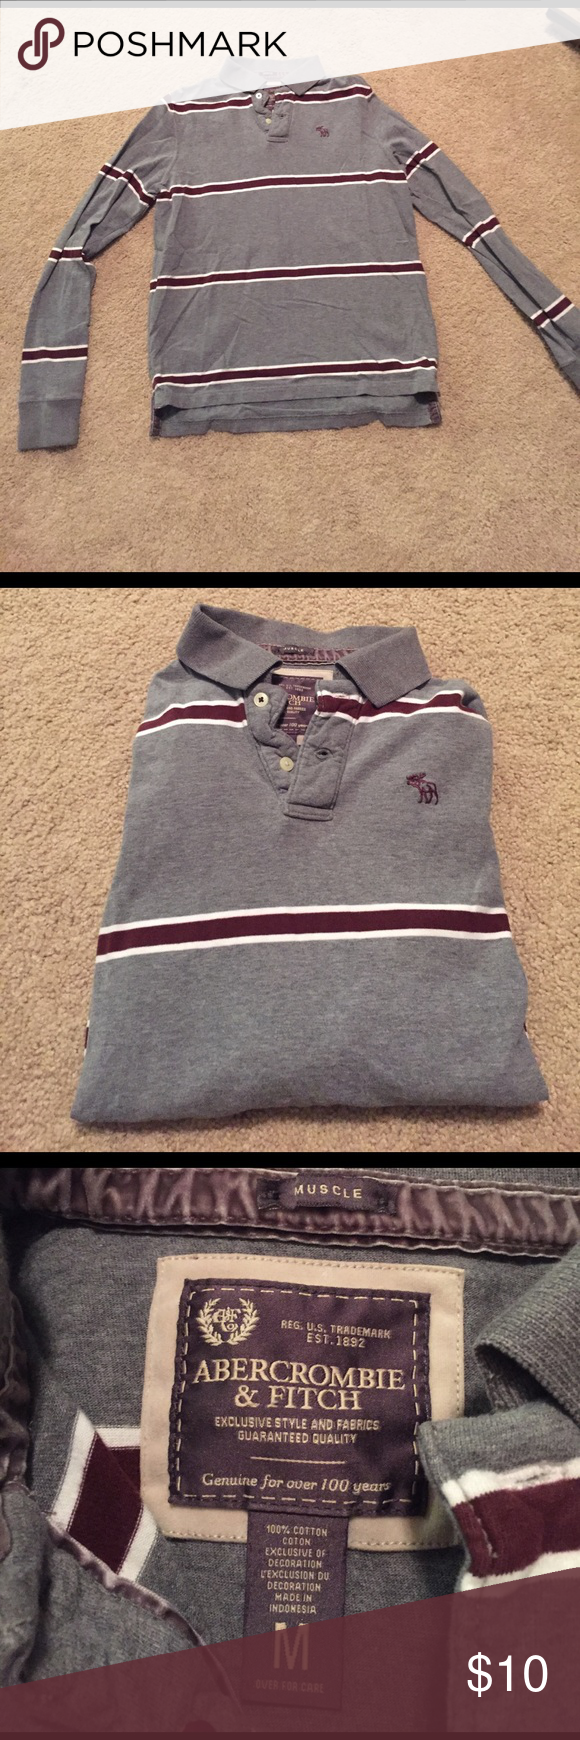 Abercrombie & Fitch long sleeve polo Men's Abercrombie & Fitch long sleeve polo shirt. Abercrombie & Fitch Shirts Polos